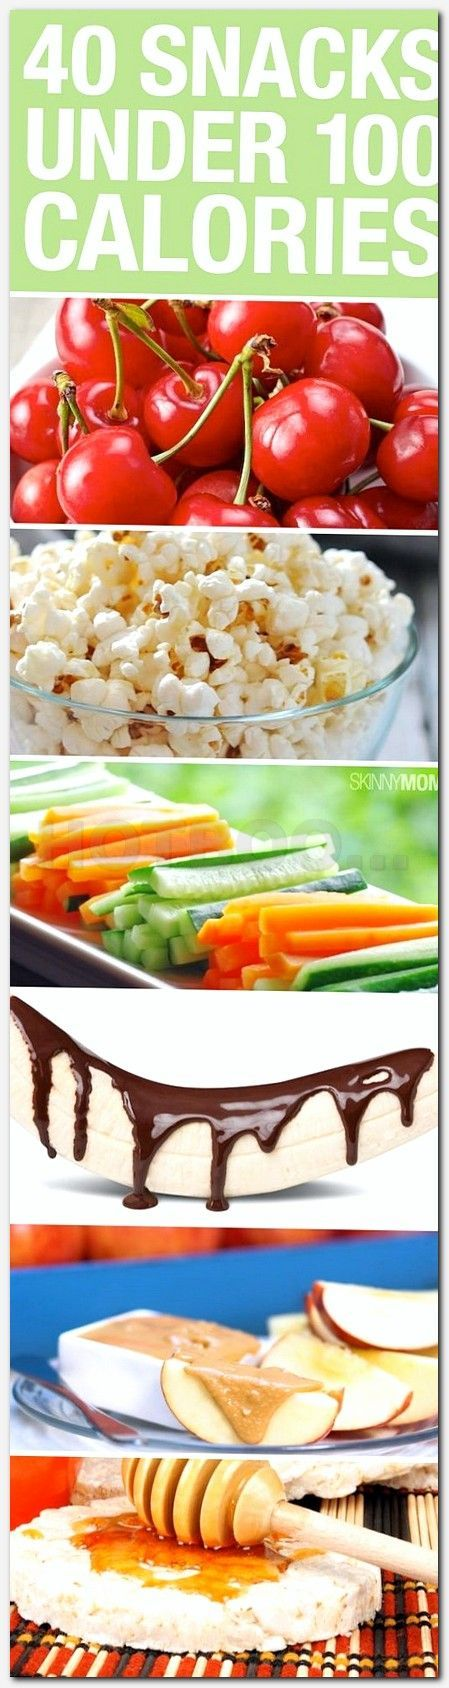 Best 25 calories per day calculator ideas on pinterest burn 100 10 basit kilo verme yontemleri haftada 5 kilo foods with protein in them ideal weight loss calculator carbohydrates in diet pre workout meal forumfinder Choice Image